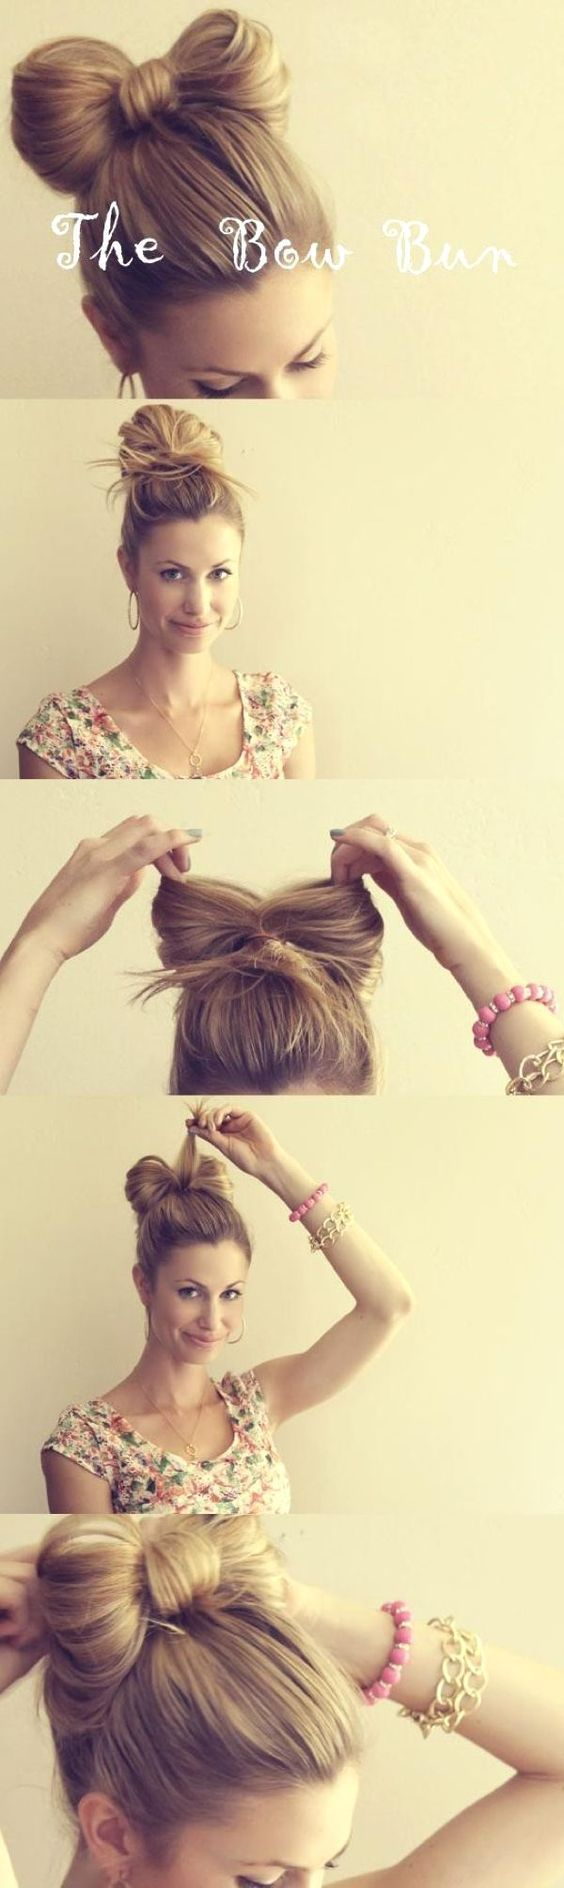 10 Hairstyles You Can Make In Less Than 2 Mins Fast Easy Hairstylessuper